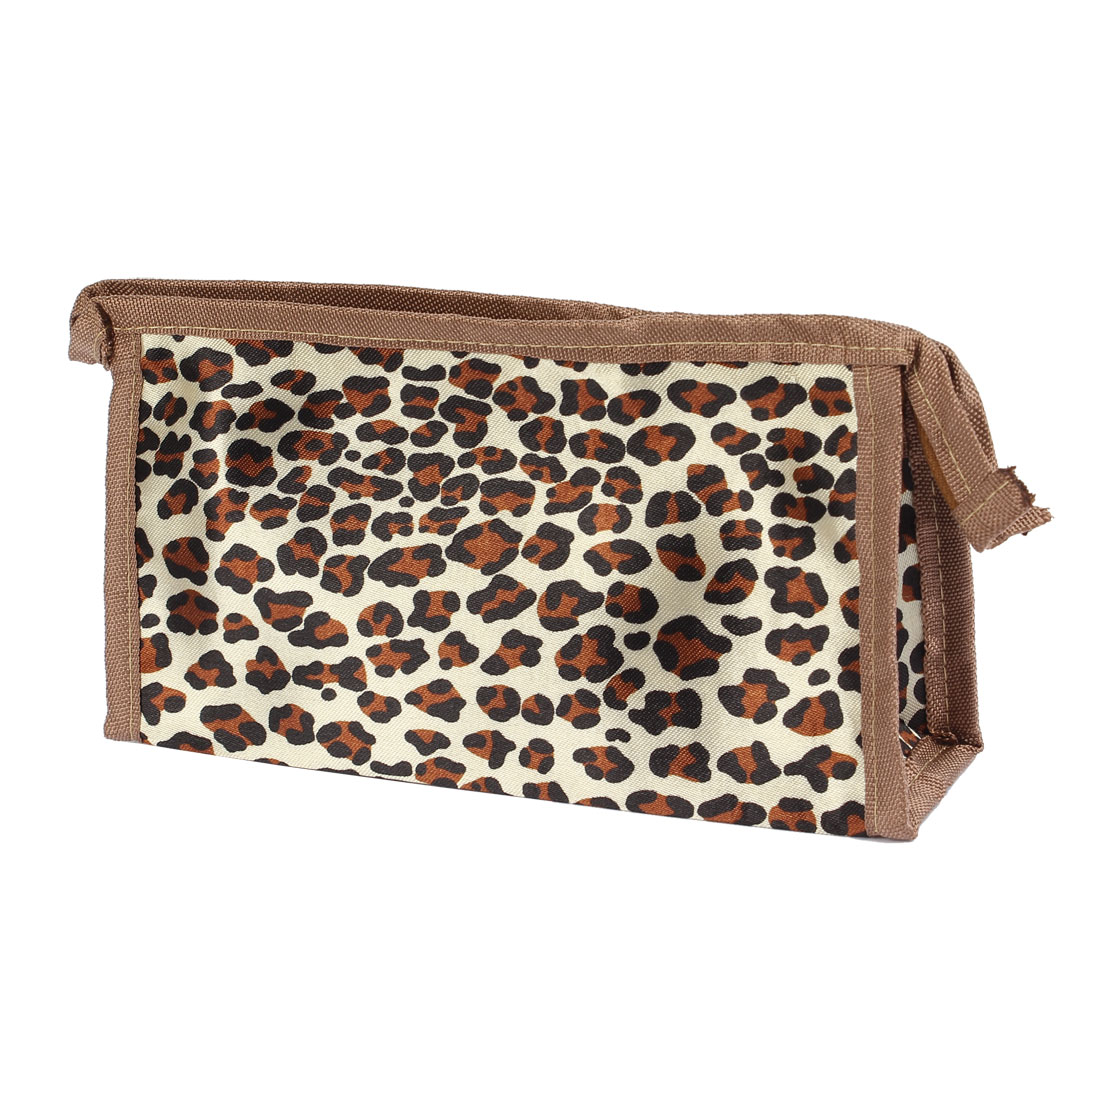 Lady Zippered Polyester Makeup Cosmetic Bag Holder Brown Beige